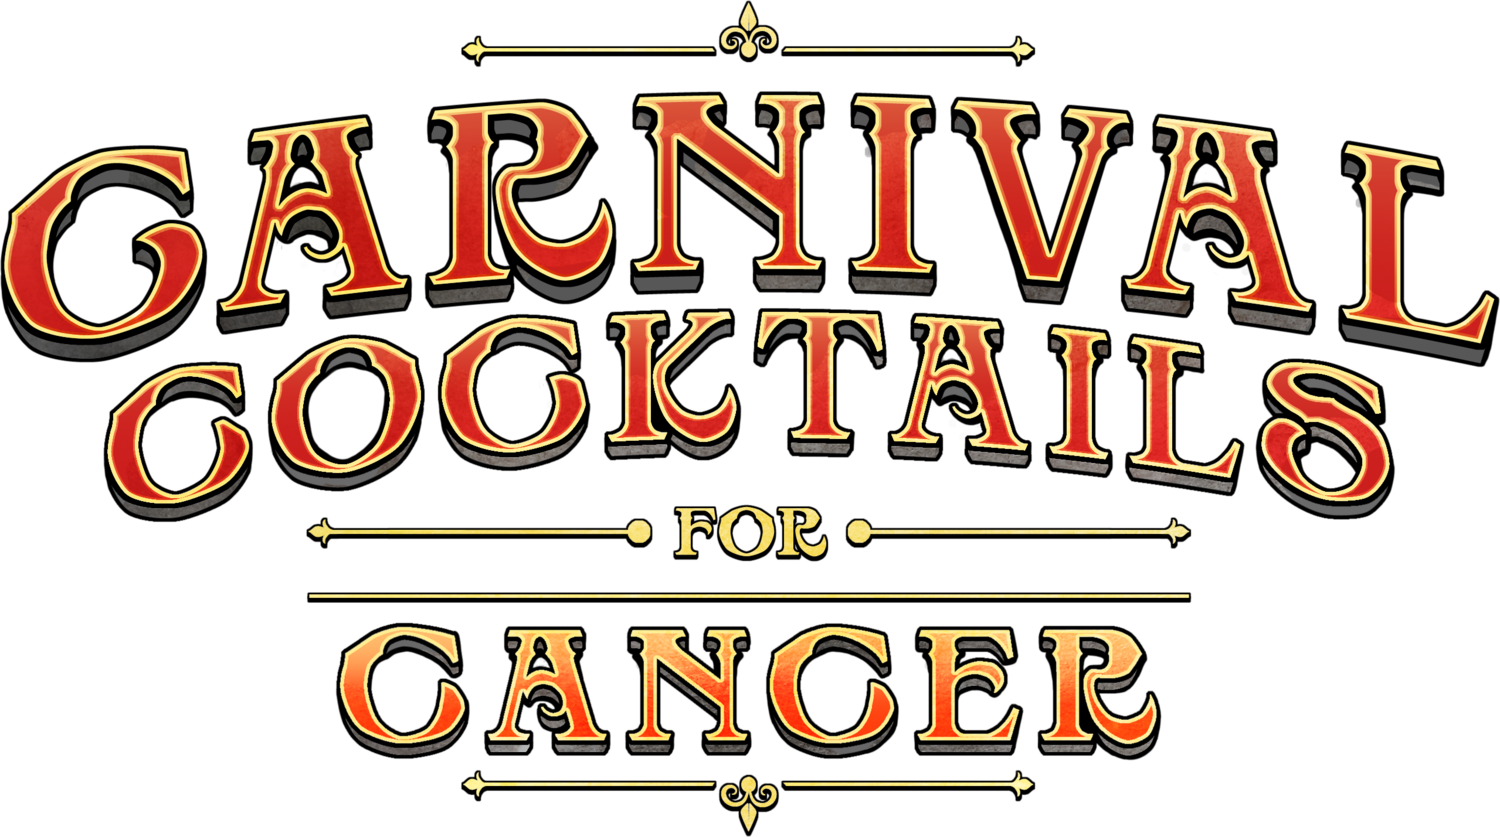 Carnival Cocktails for Cancer